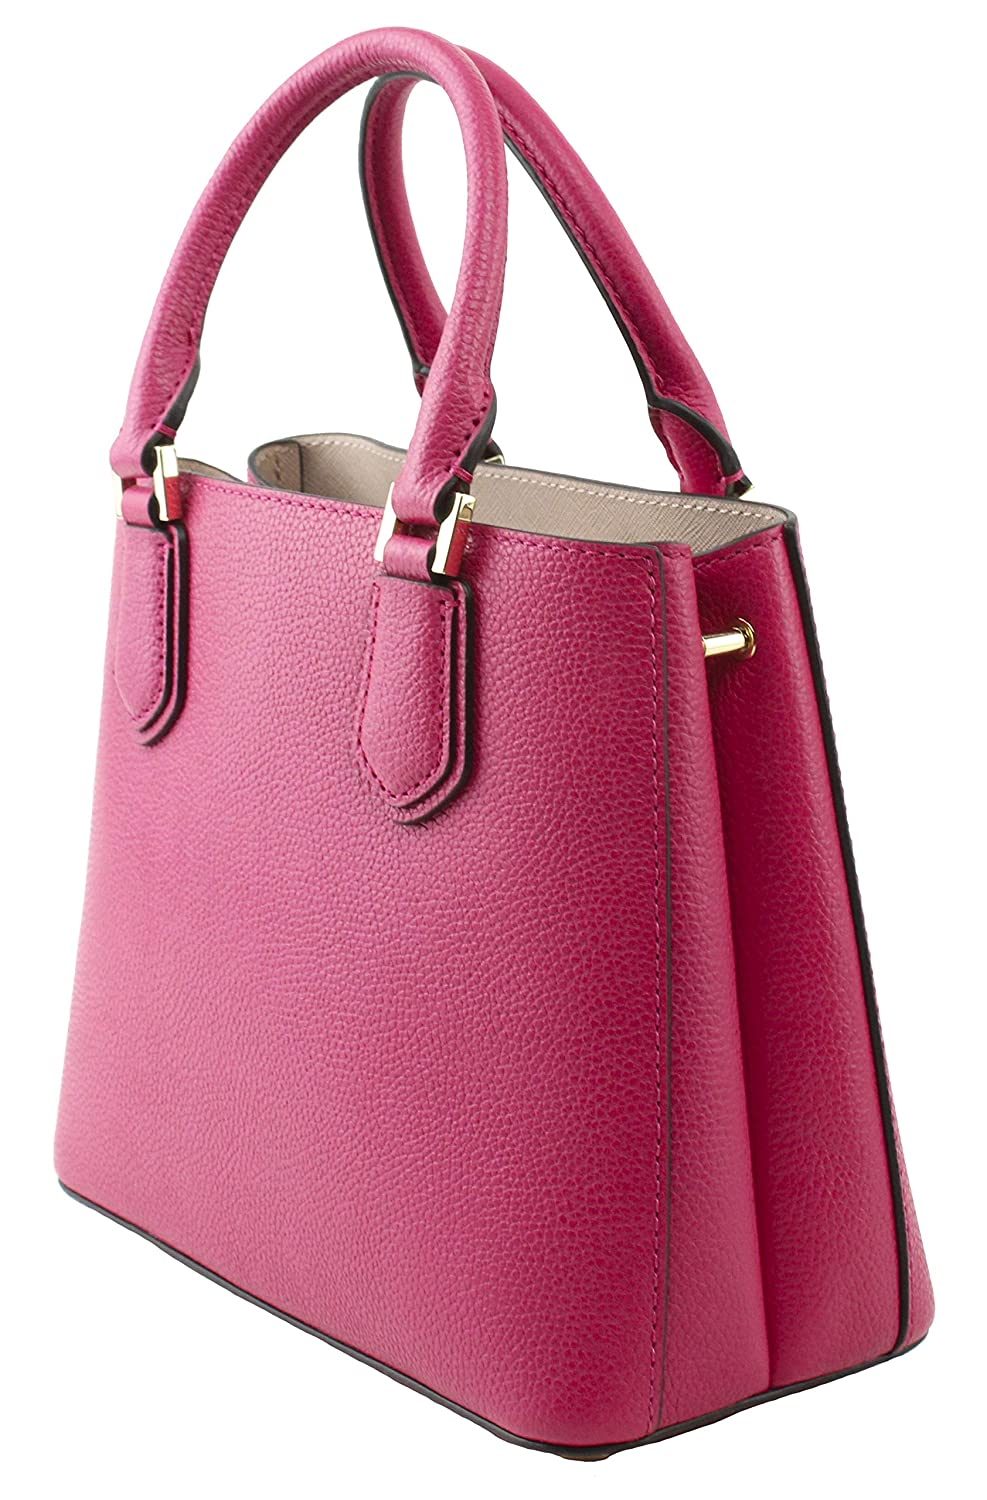 03bfb703bd3aee Amazon.com: MICHAEL Michael Kors Women's Adele Ruben Red Hot Pink Mercer  Medium Messenger Bag, Style MK-35T8GAFM2L: Shoes